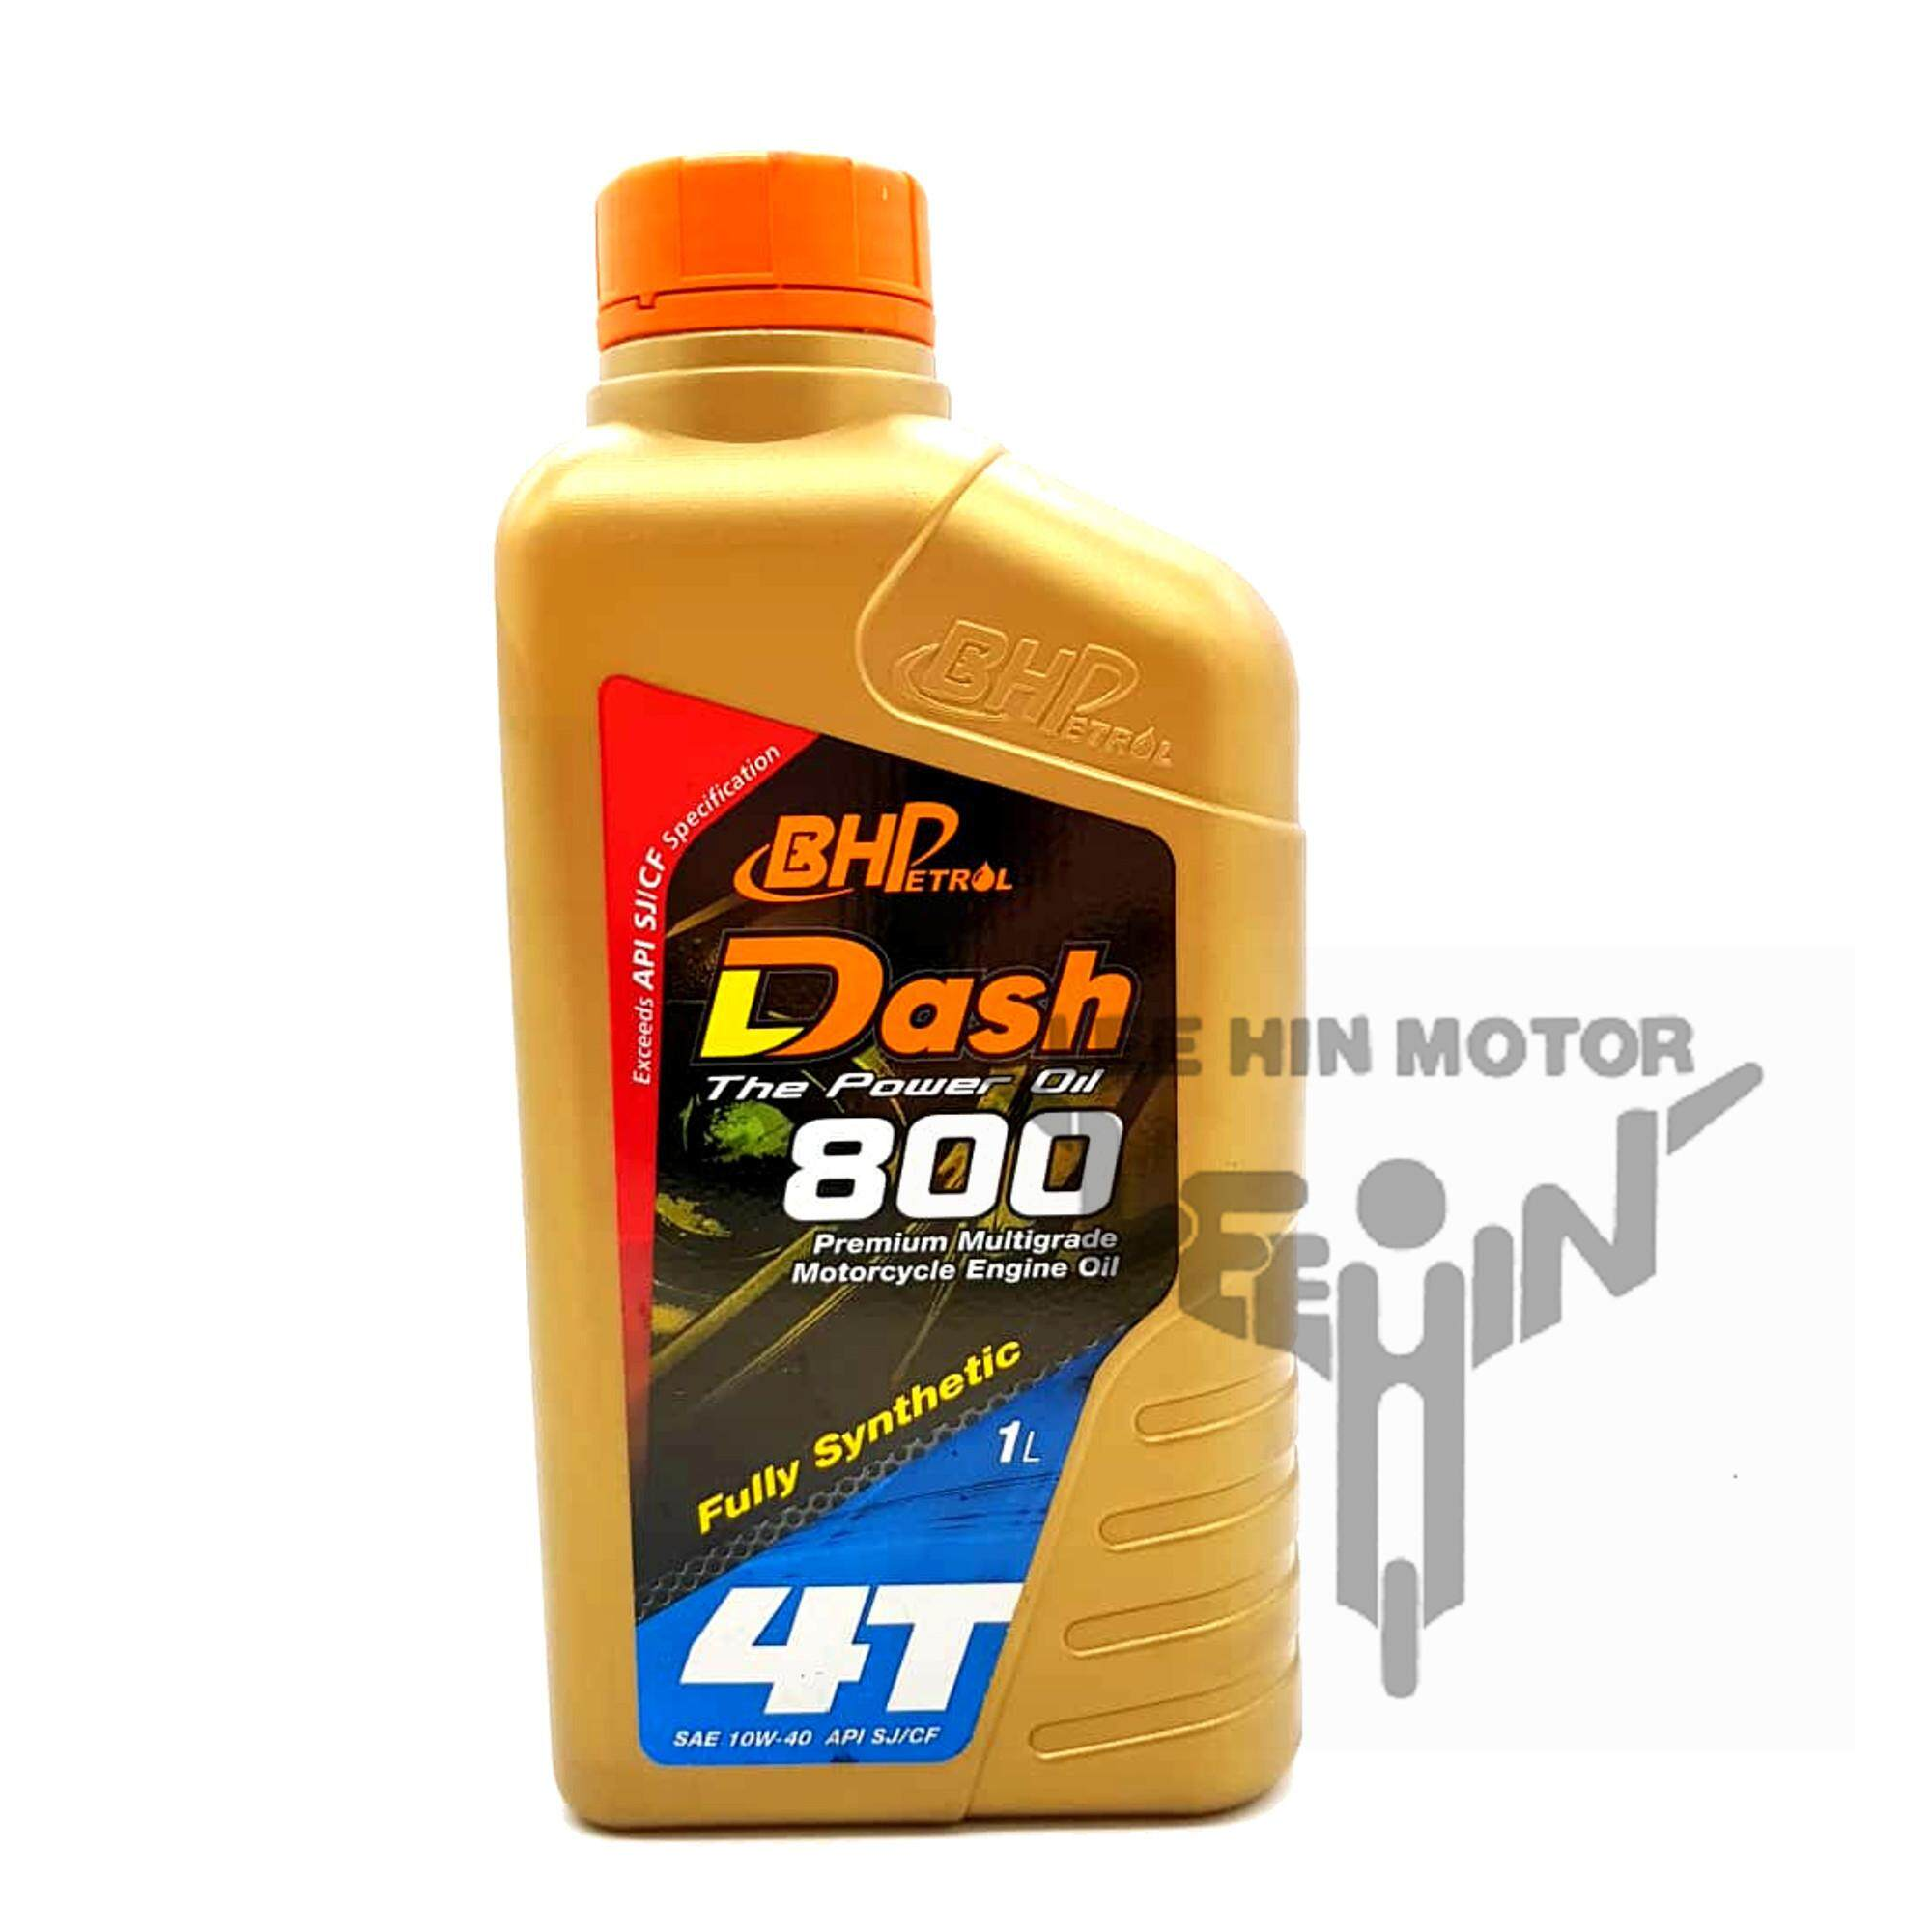 Original BHP Petrol Dash 800 Fully Synthetic 10w40 Engine Oil 4T Minyak Hitam ( 1 Litre )